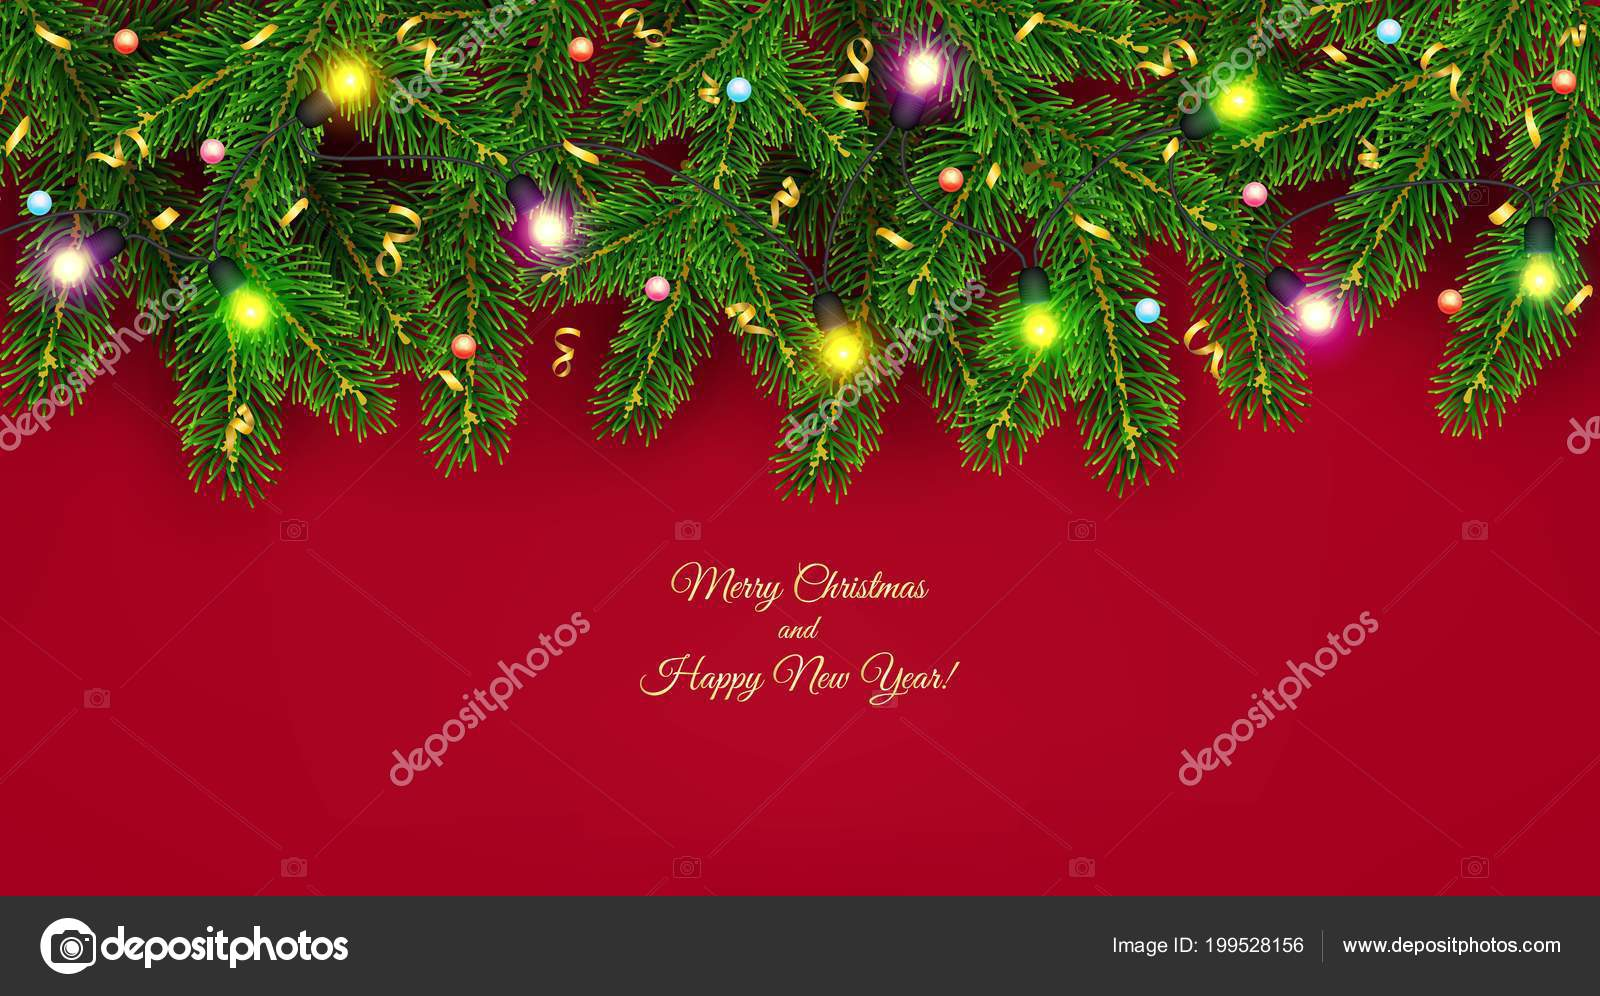 christmas and new year banner of realistic branches of christmas tree garland with glowing light bulbs holly berries serpentine festive background vector